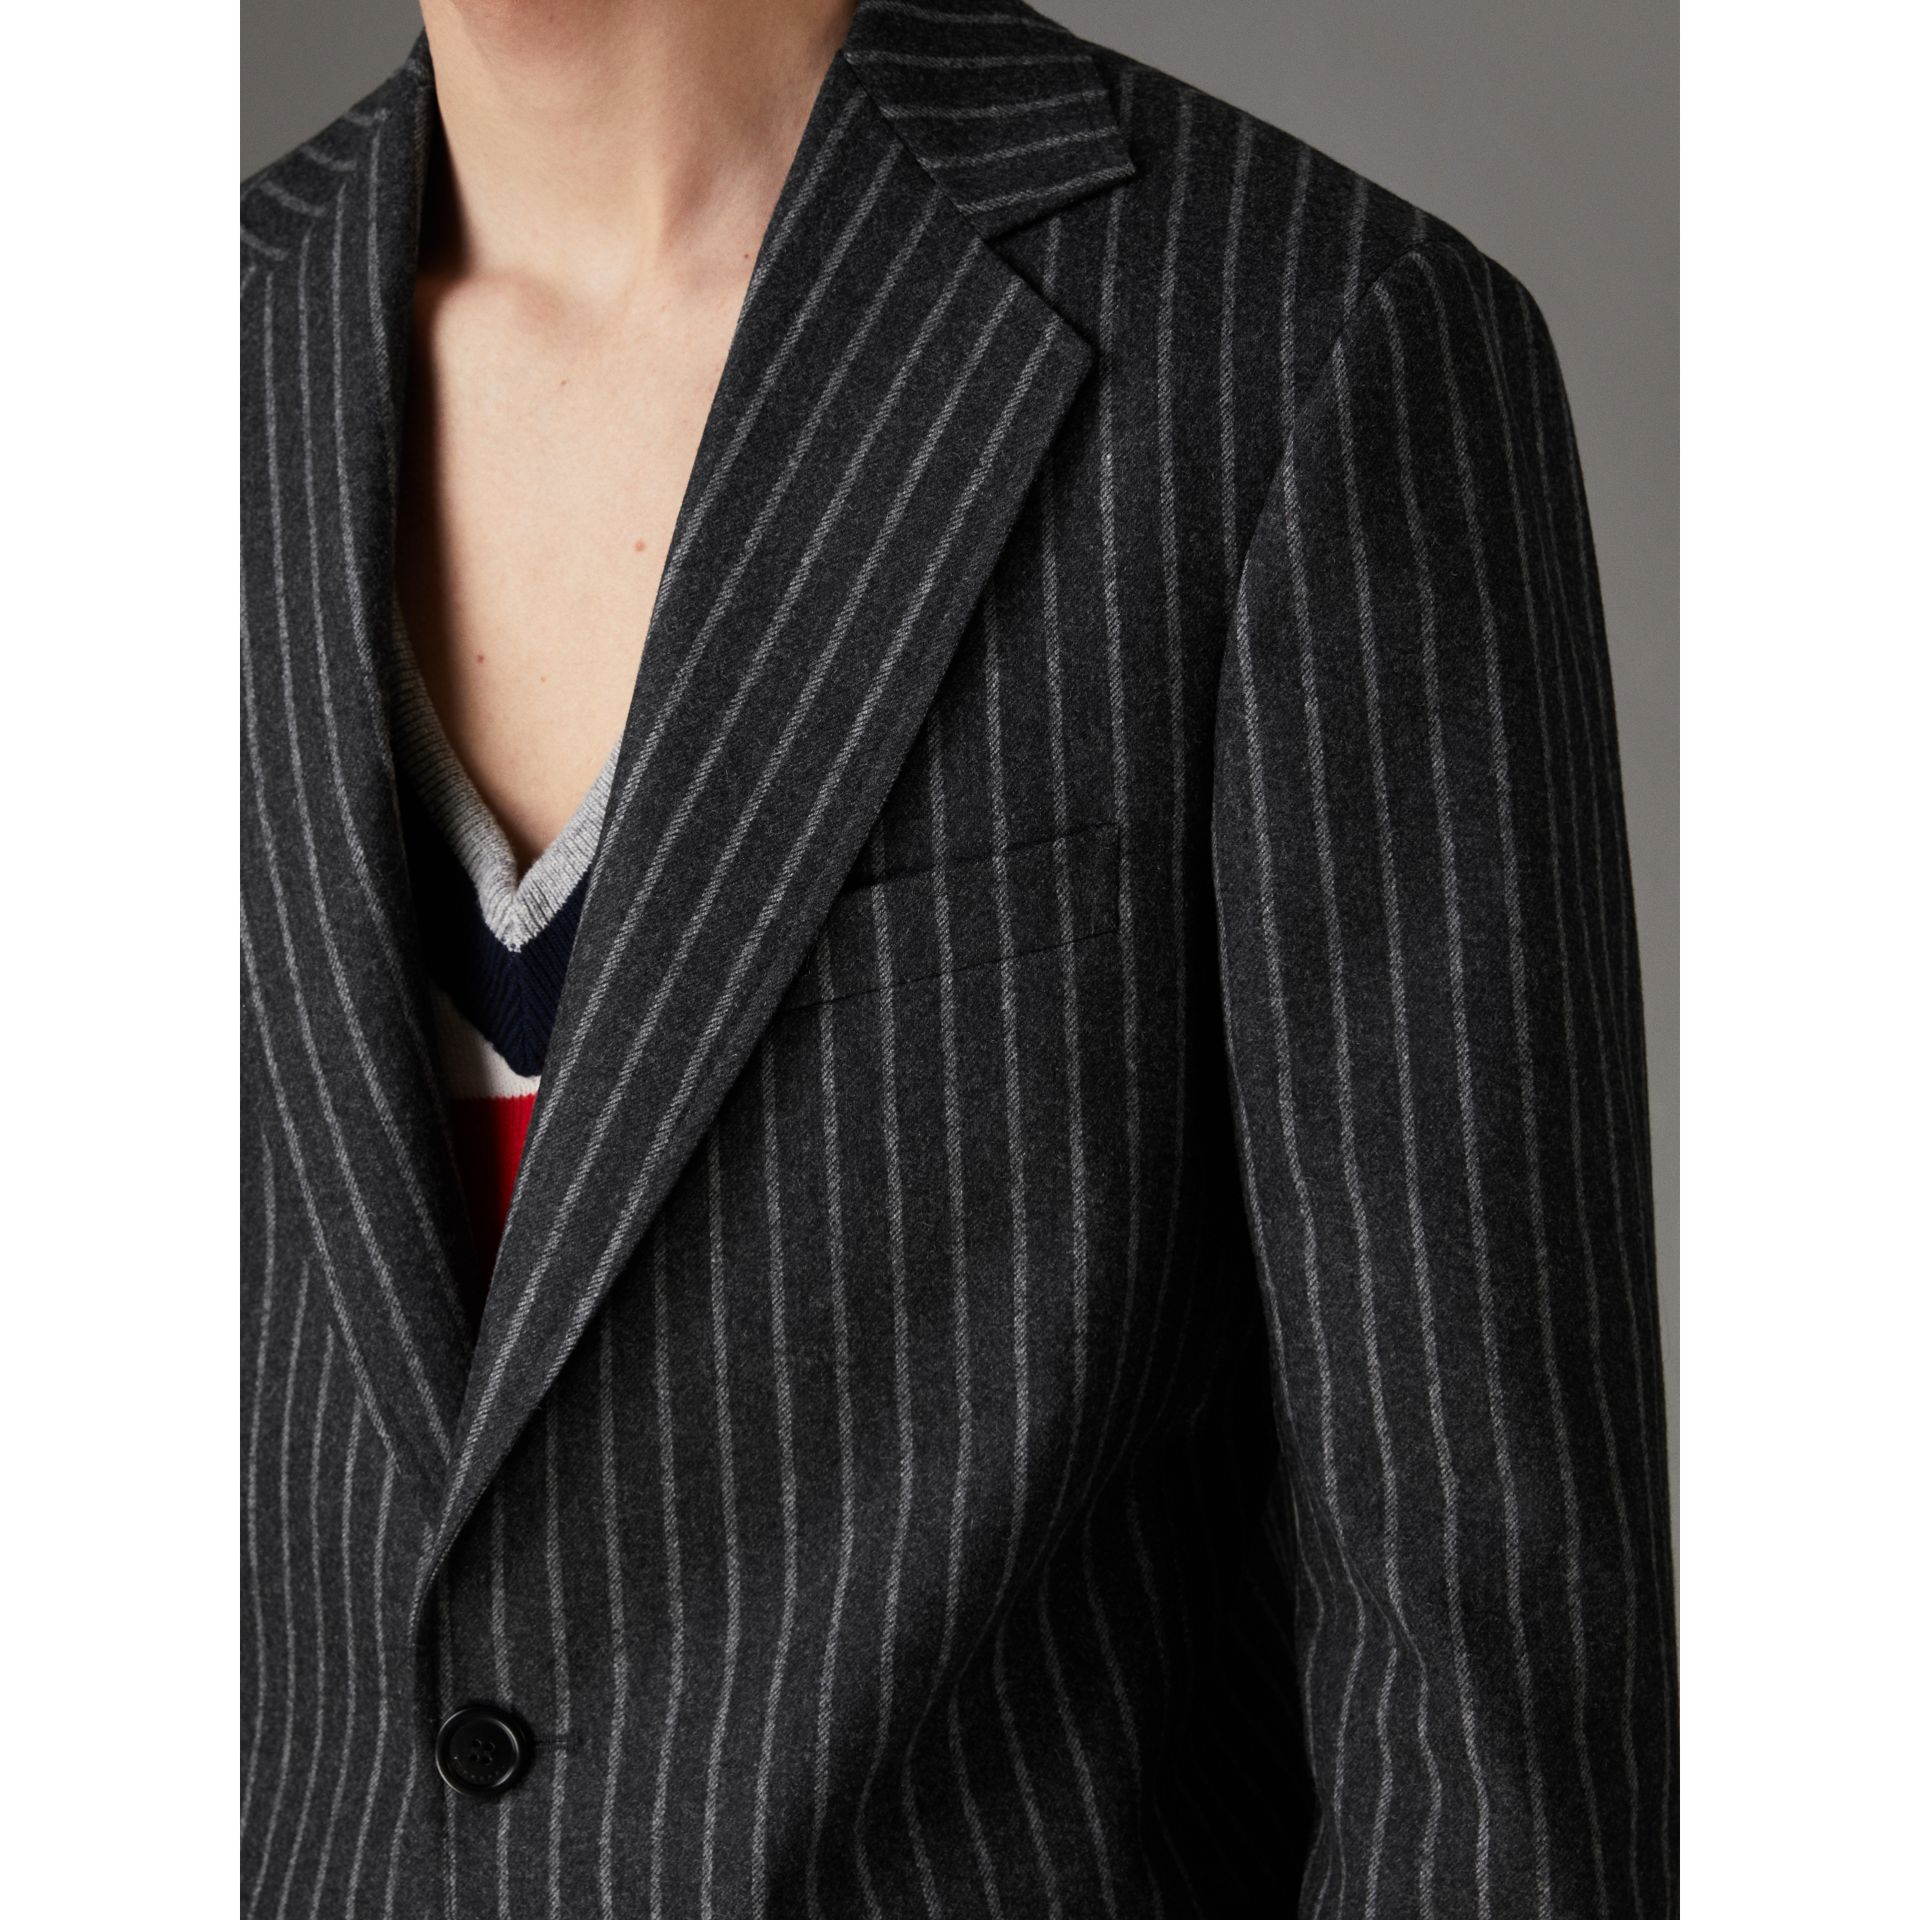 Pinstriped Wool Blend Twill Tailored Jacket in Dark Grey | Burberry Canada - gallery image 1